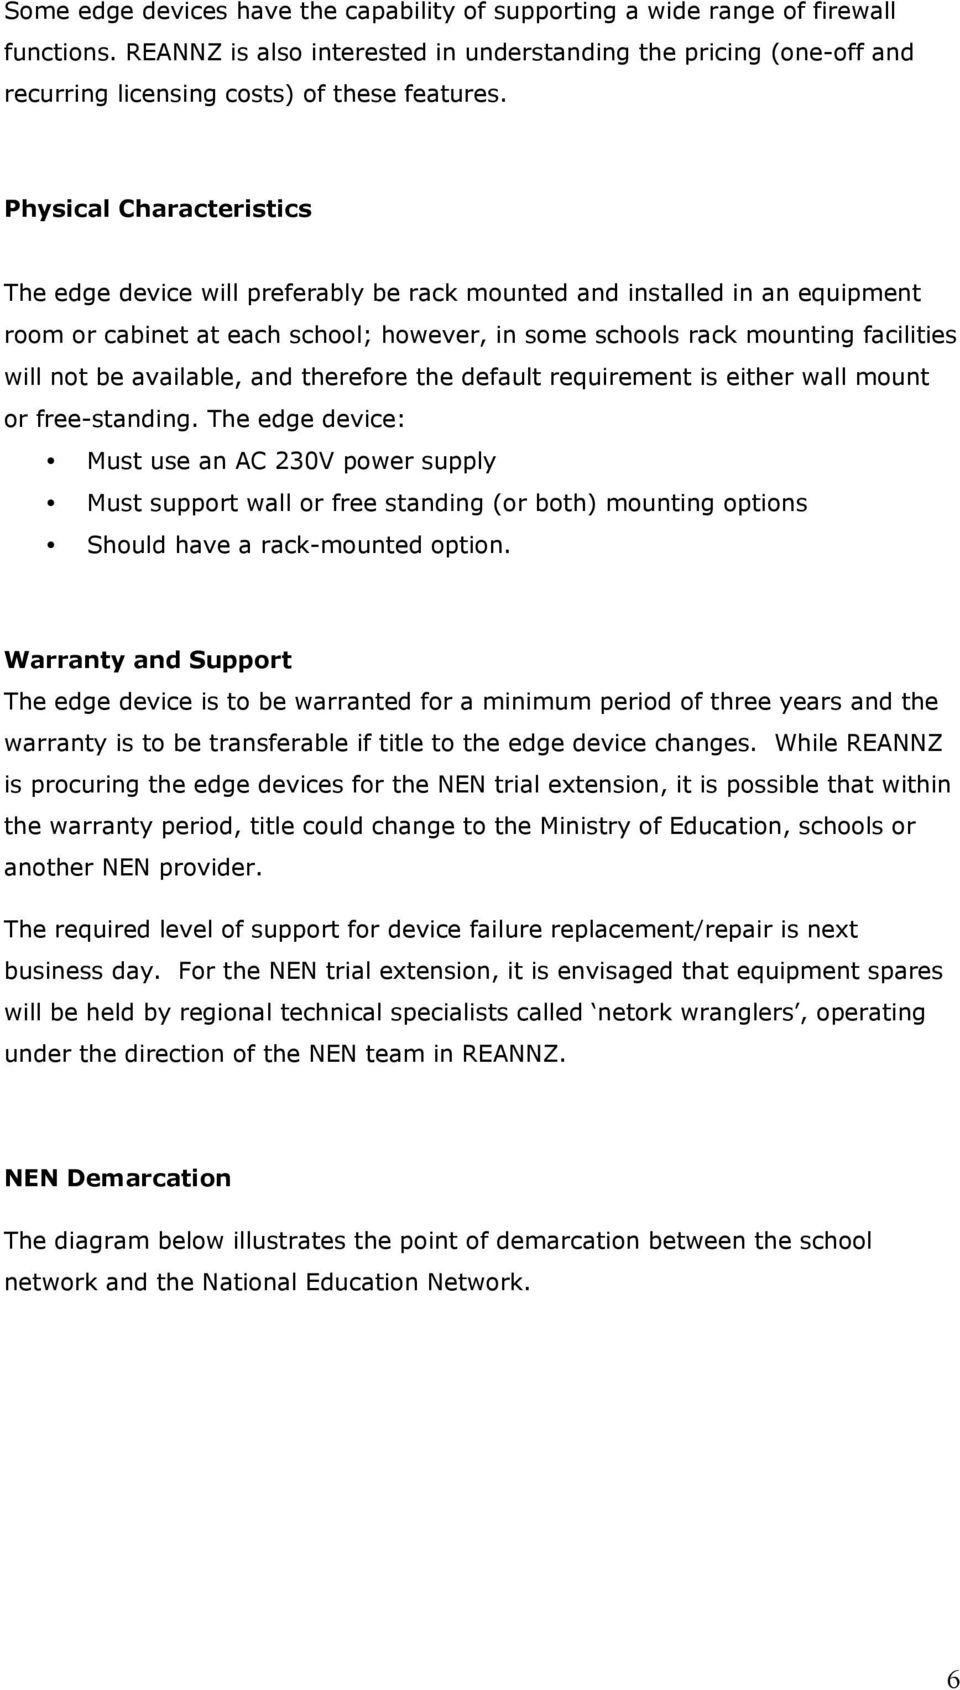 Physical Characteristics The edge device will preferably be rack mounted and installed in an equipment room or cabinet at each school; however, in some schools rack mounting facilities will not be